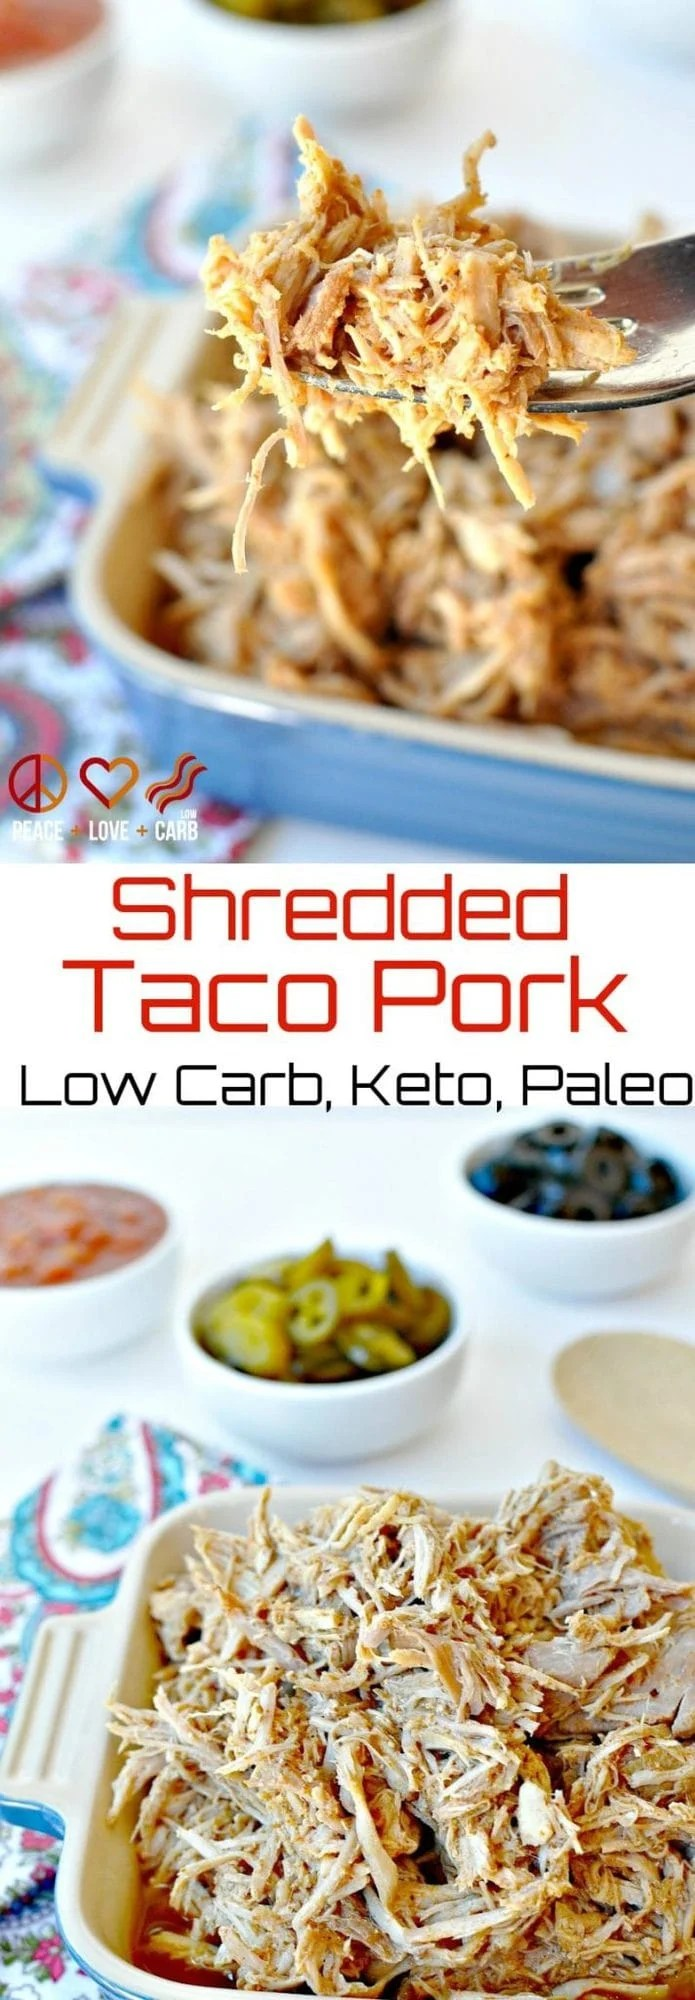 Low Carb Shredded Taco Pork - Keto, Paleo | Peace Love and Low Carb